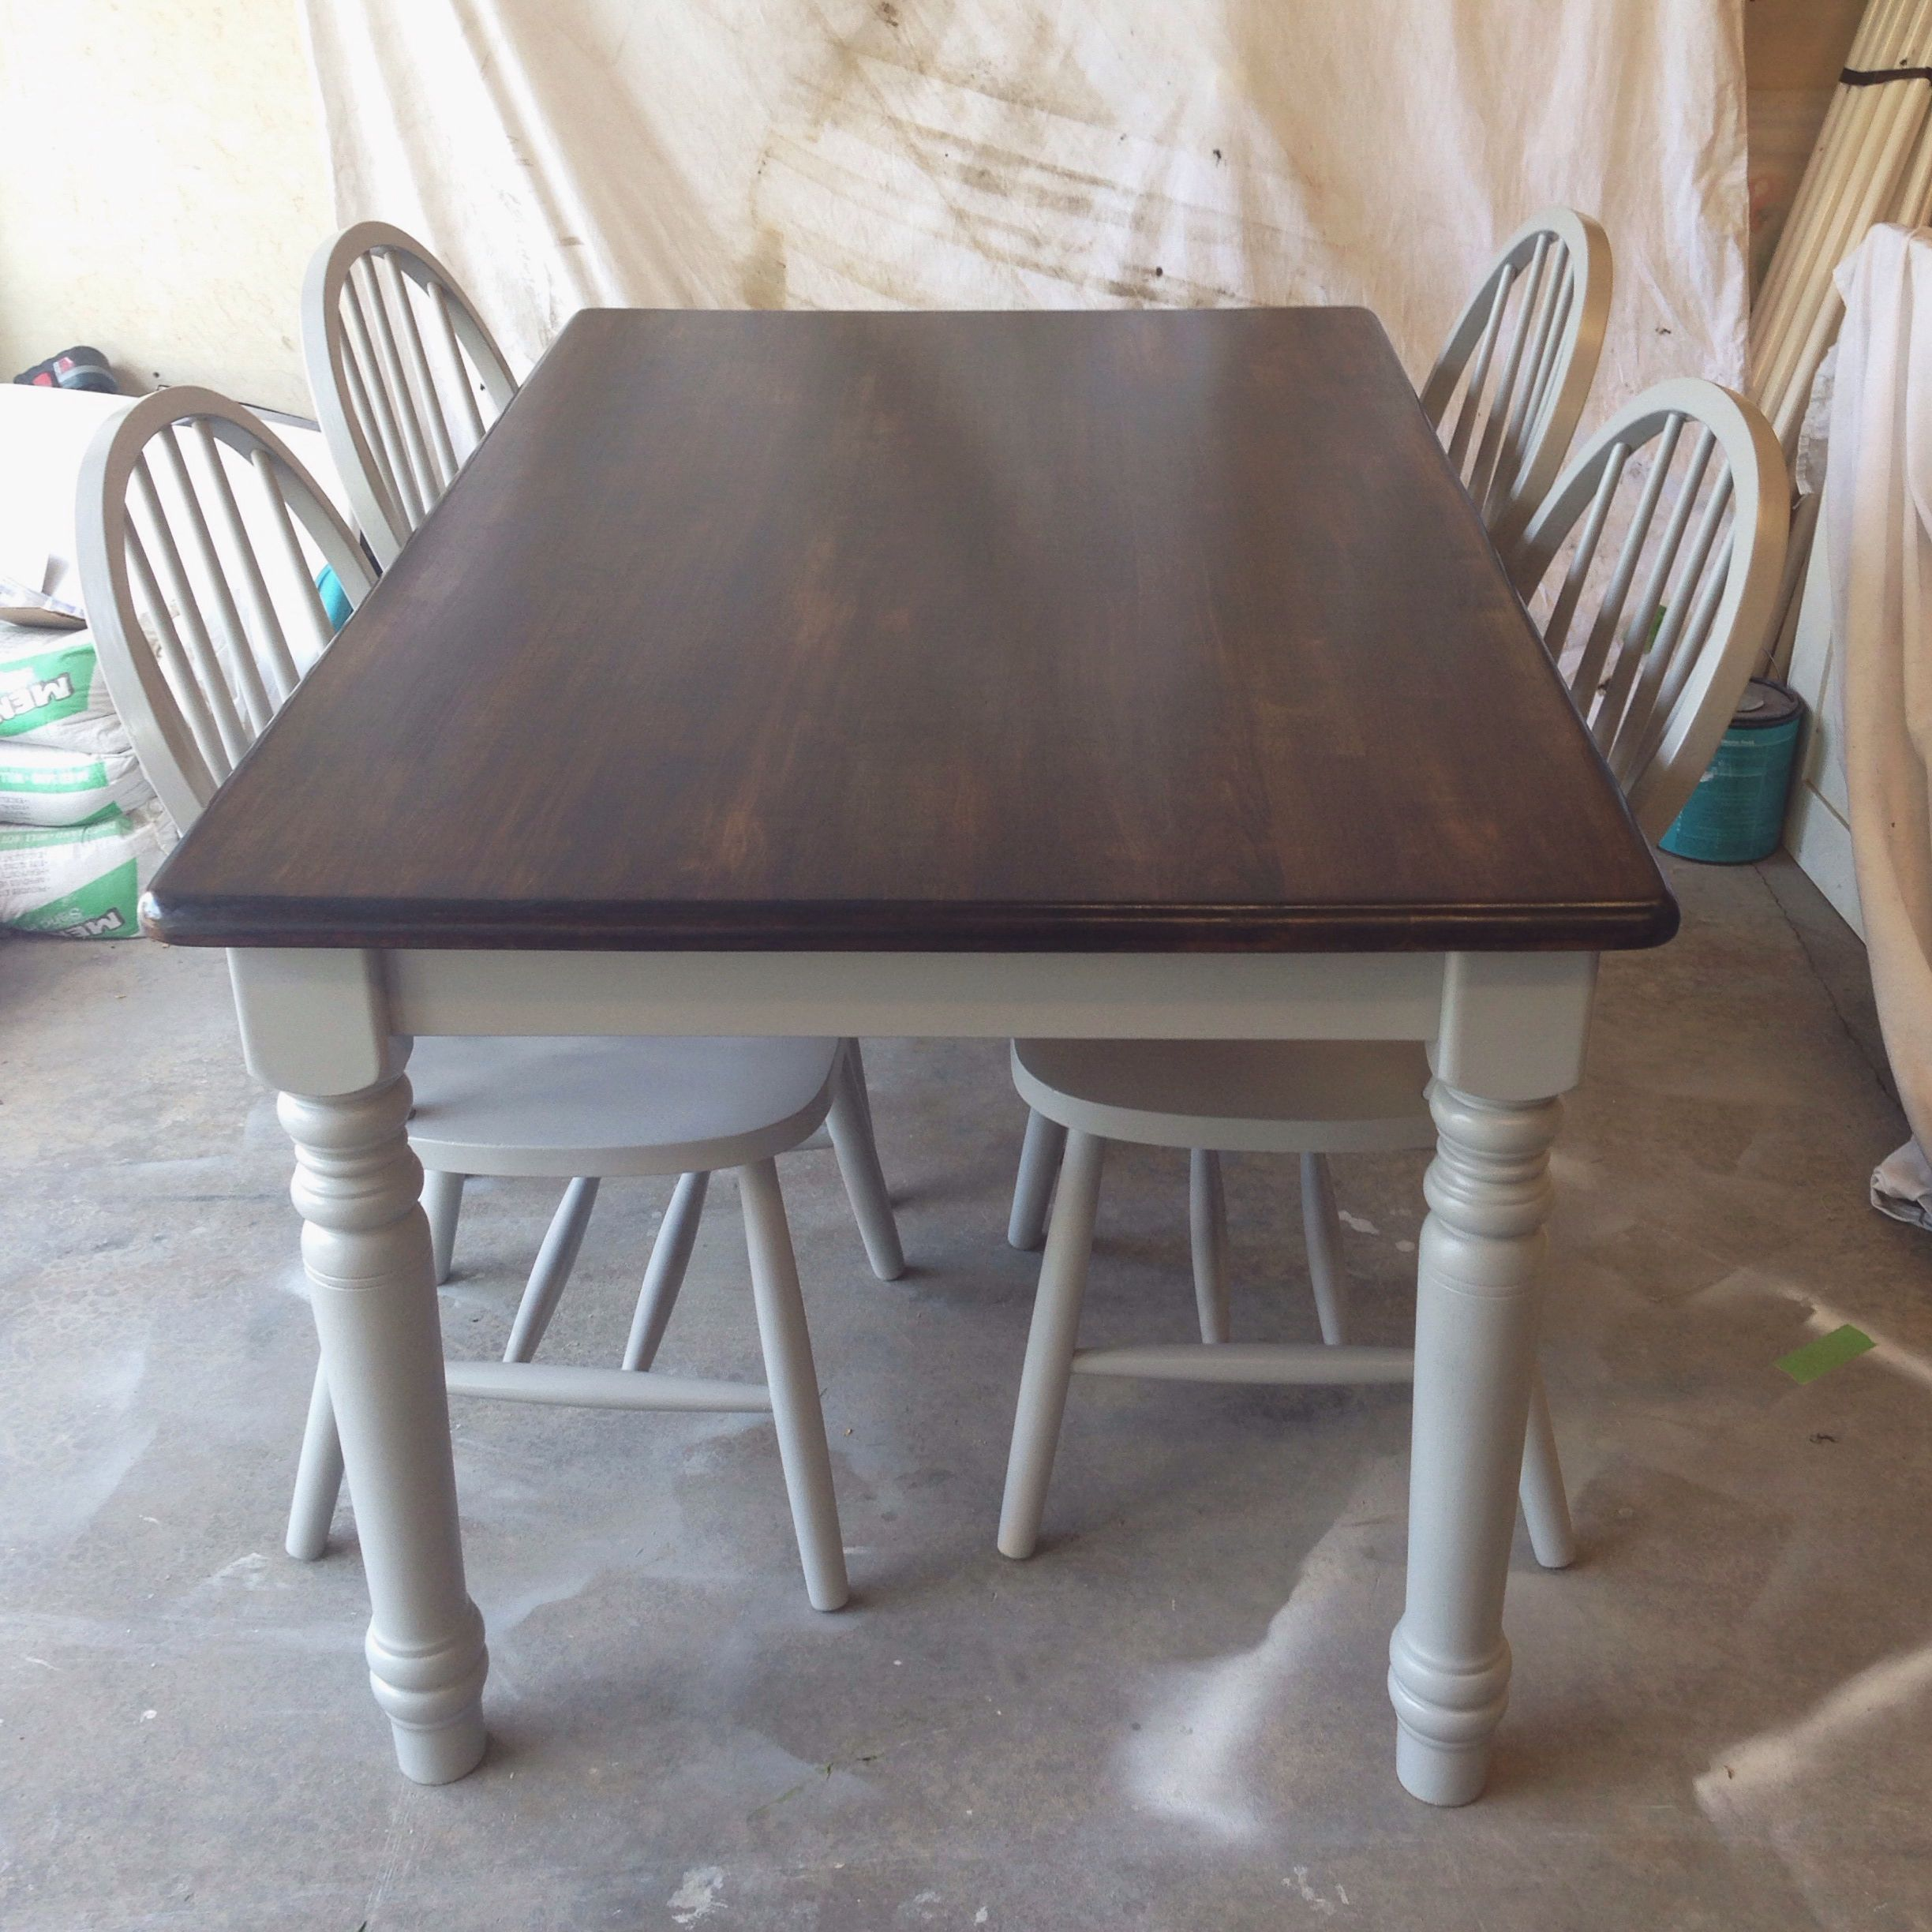 Painted With Rustoleum Spray Paint Stone Gray Minwax Stain Dark Walnut